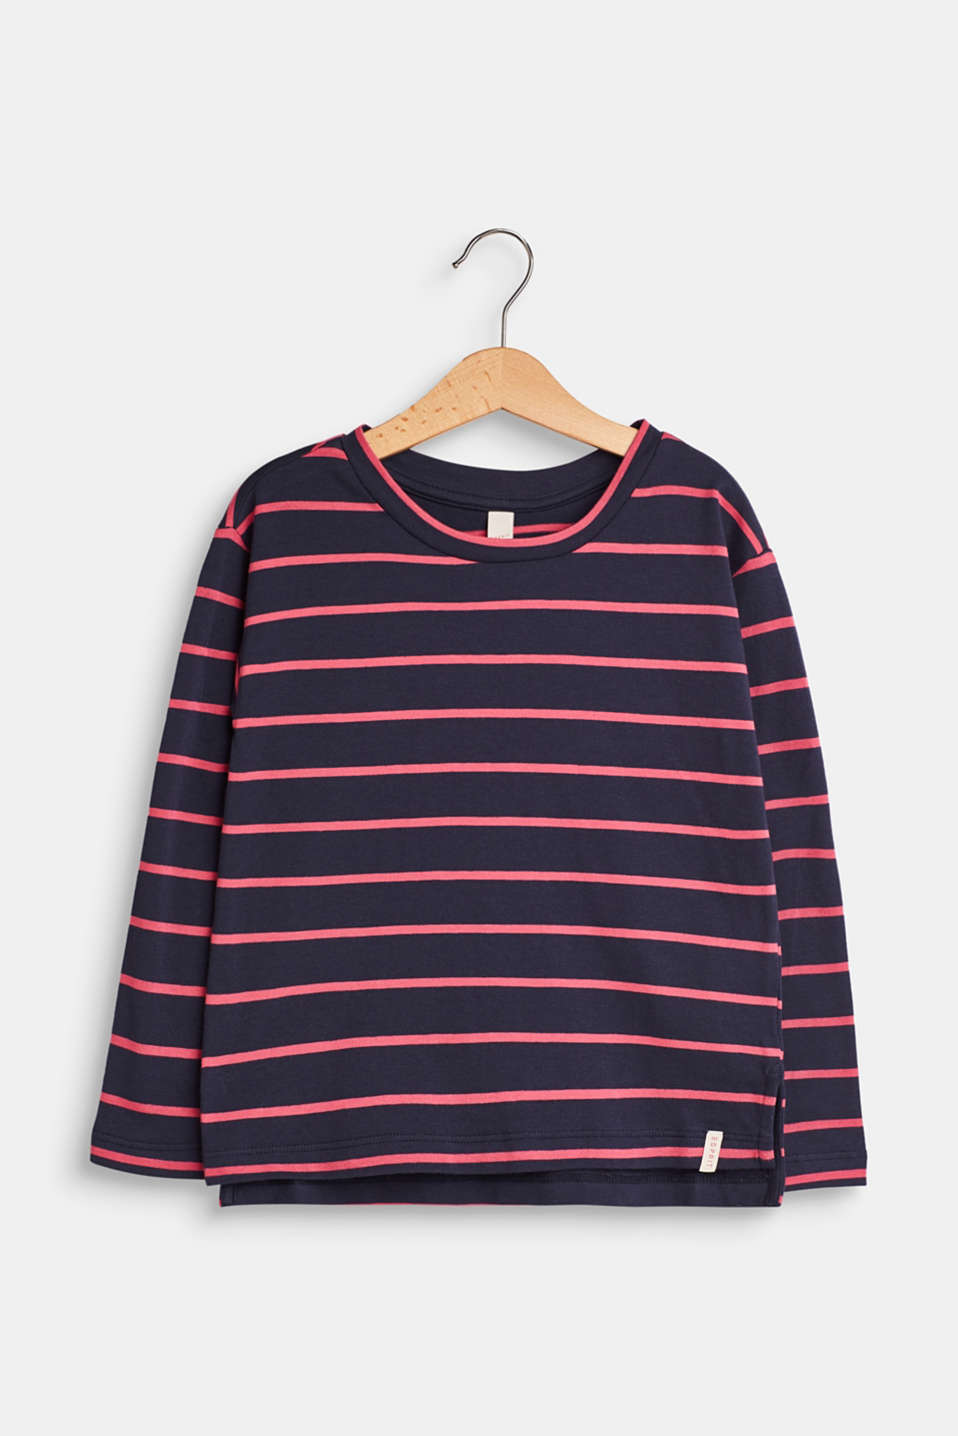 Esprit - Striped long sleeve top made of stretch cotton